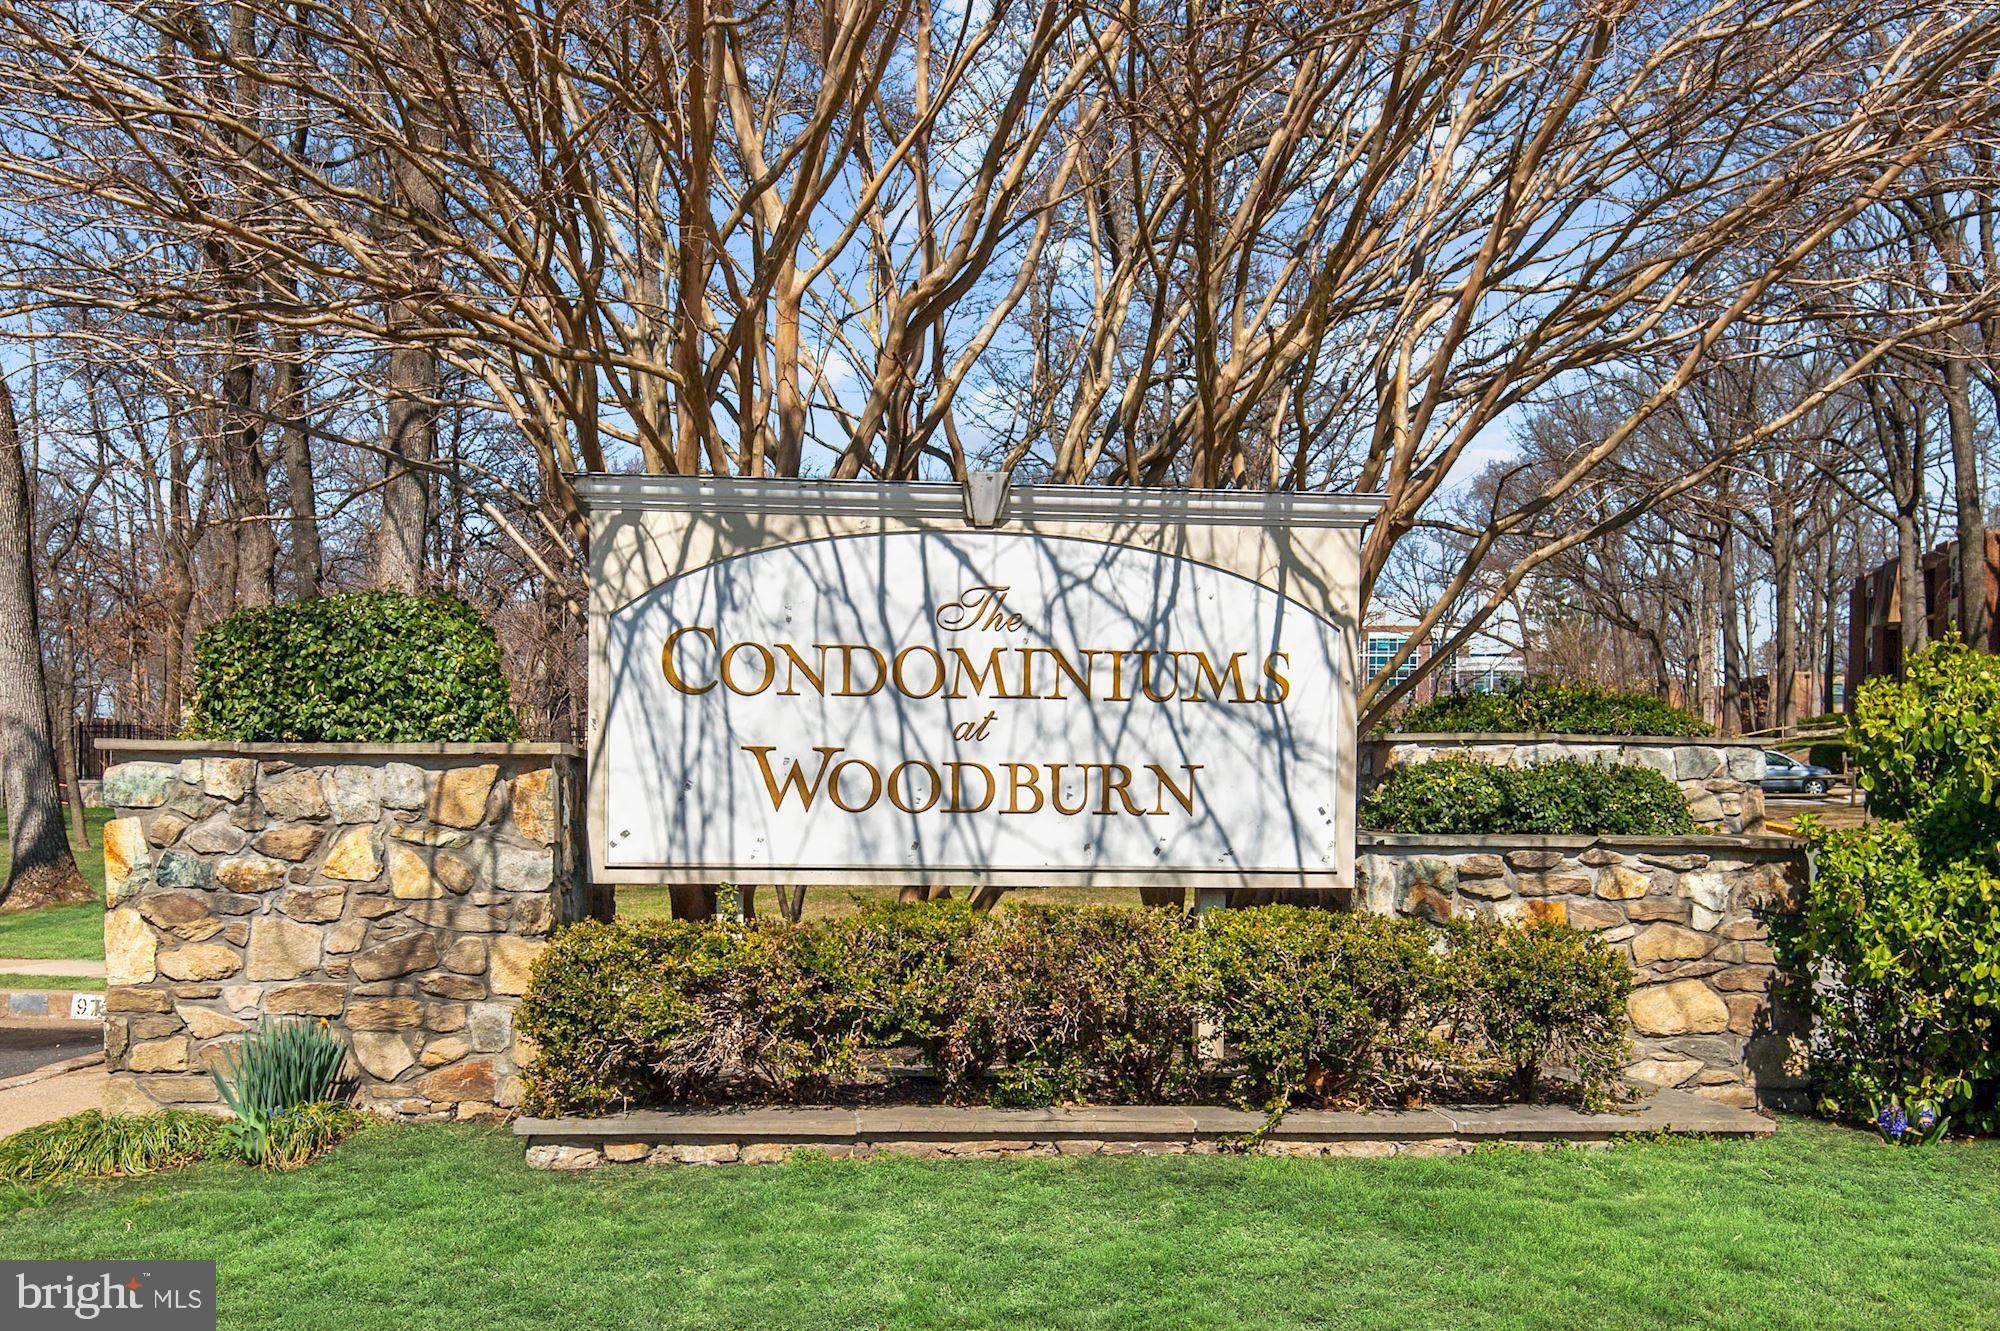 Welcome Home To The Condominiums At Woodburn Village! It Is A Wooded Haven In Growing Annandale VA - The Condo's Are Nestled In A Peaceful Haven Of Trees Convenient To Downtown DC, Dunn-Loring-Merrifield METRO-Minutes From The Beltway - Adjacent To The Fairfax NOVA Campus-Mosiac District Nearby.  On Site We Have A Newly Remodeled Pool, Tennis Courts, Basket Ball Courts, A Multi Use Athletic Court, As Well As Grills, Playgrounds, And Assigned Parking With Parking Permit Needed For All Vehicles Parked In The Parking Lot.  (Must Visit Woodburn Office, Near The Pool To Obtain Temporary Pass.) We Are Surrounded By Parks And Trails.  The Condo Fee Is All Inclusive, Includes Everything!  Eco Friendly Landscaping.  30 Acres Of Year-Round Landscaping, Relaxing Water Fountain Located Near The Office, Trees And Courtyard Throughout.  This Lovely 3 Bedroom, 2 Bath Condo Features Upgraded Appliances, Move In Ready, Beautifully Refinished Wood Floors Throughout.  Welcome Home To Woodburn Village!